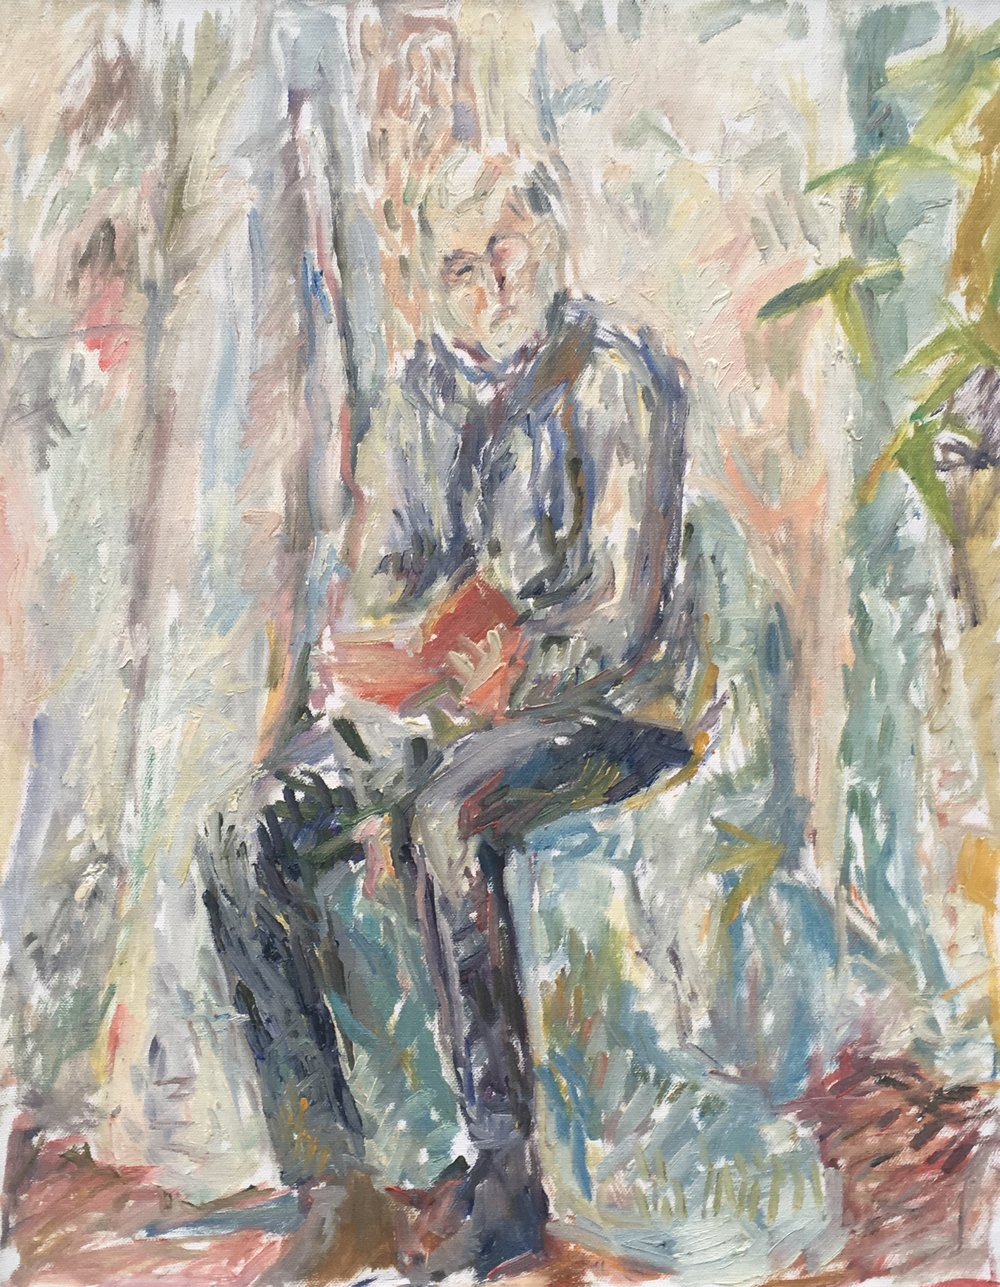 "John Reading Virginia Woolf , oil on canvas, 20"" x 16"", 2017"